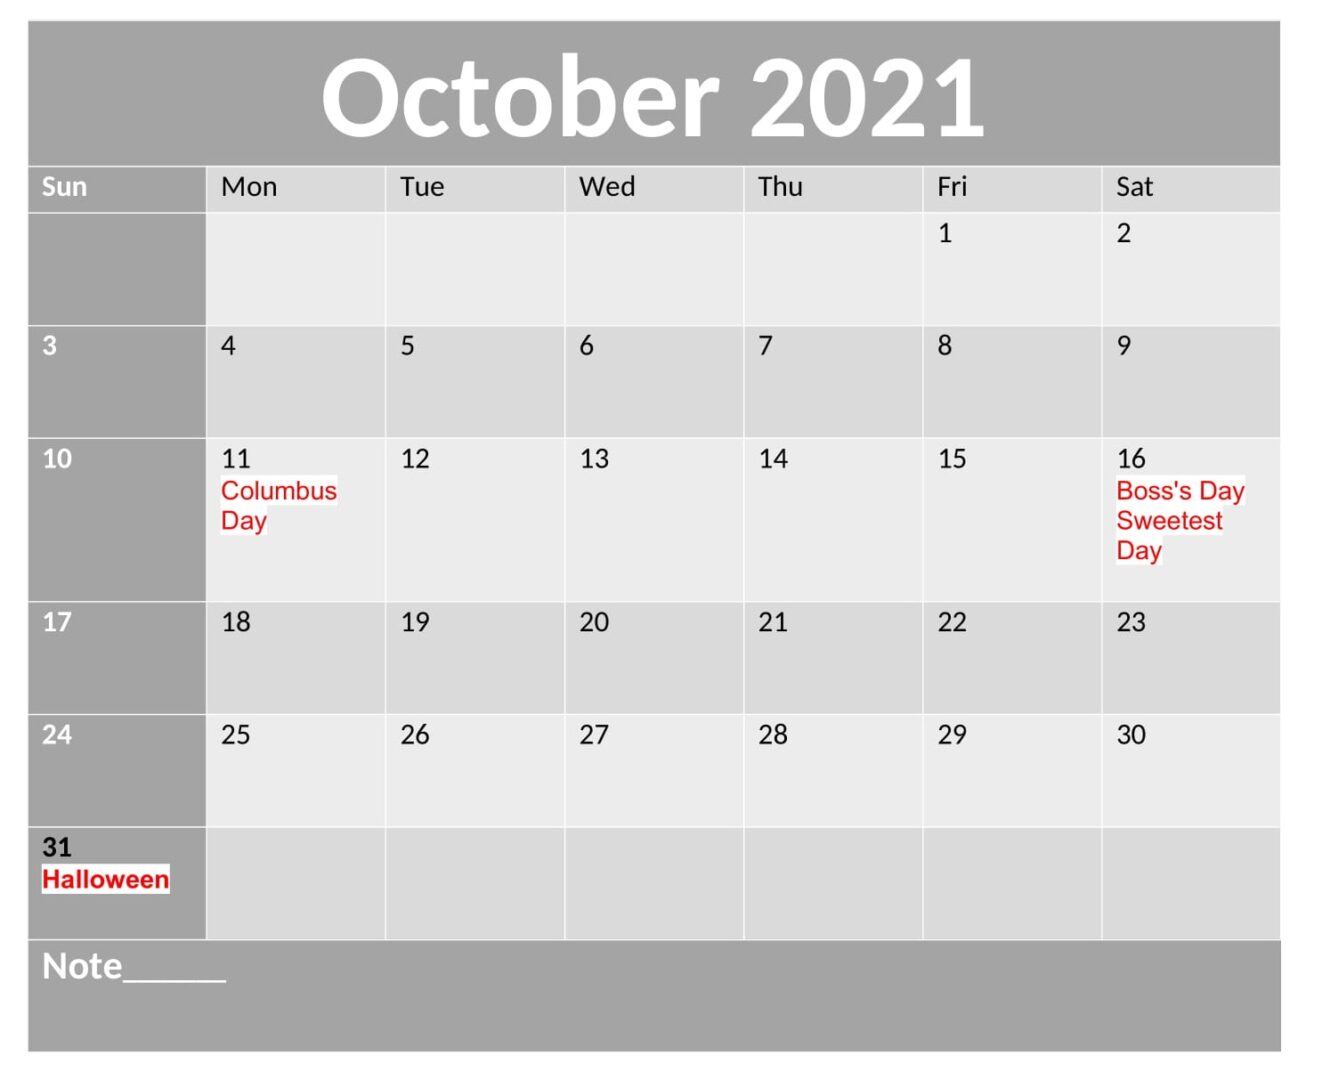 Free October 2021 Calendar With Holidays